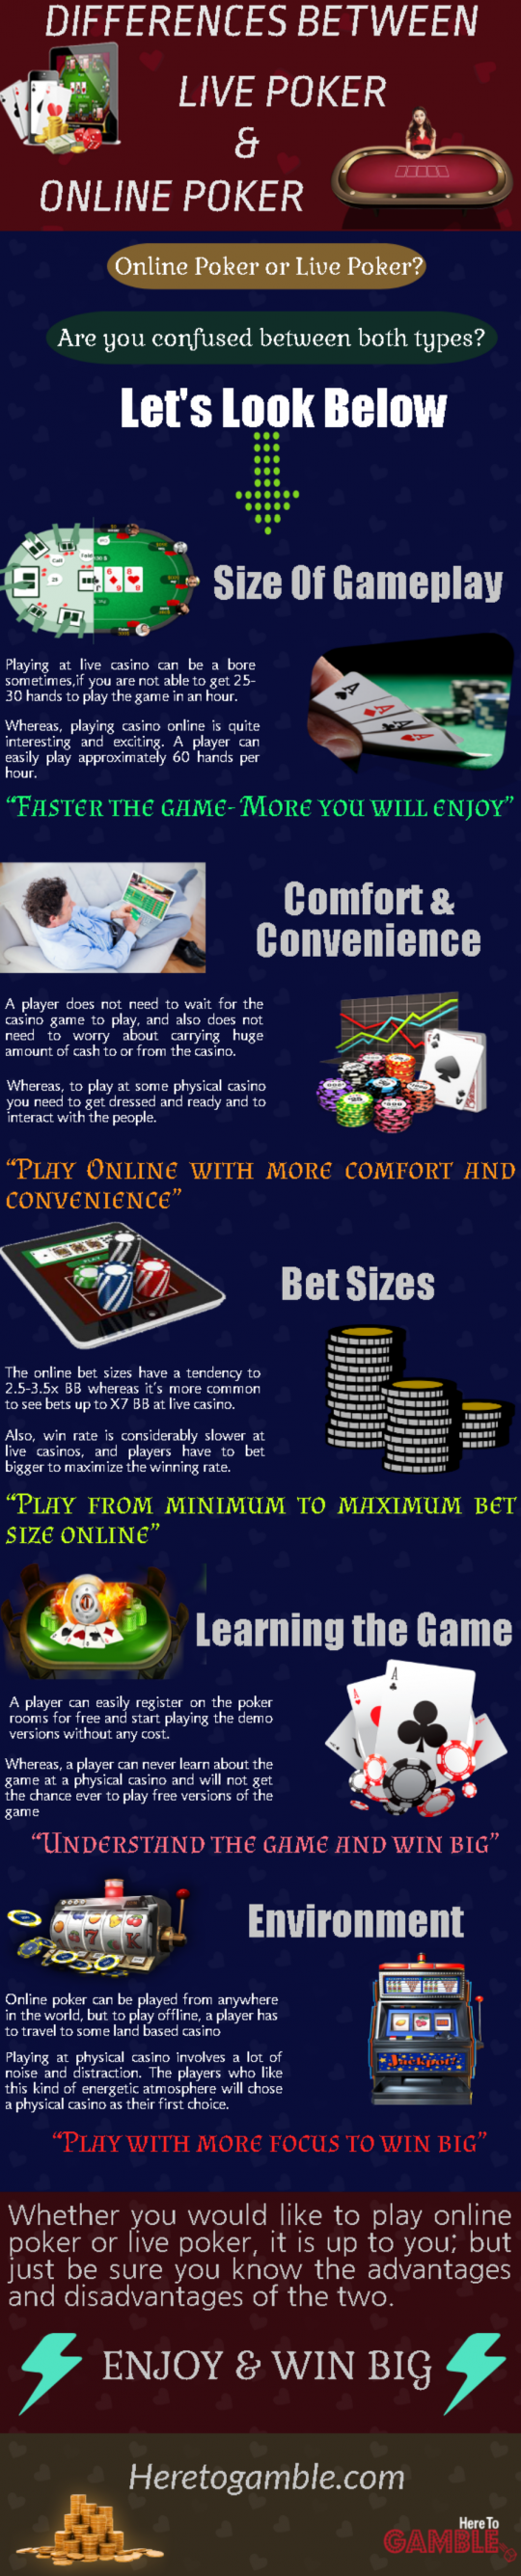 Difference Between Live Poker and Online Poker